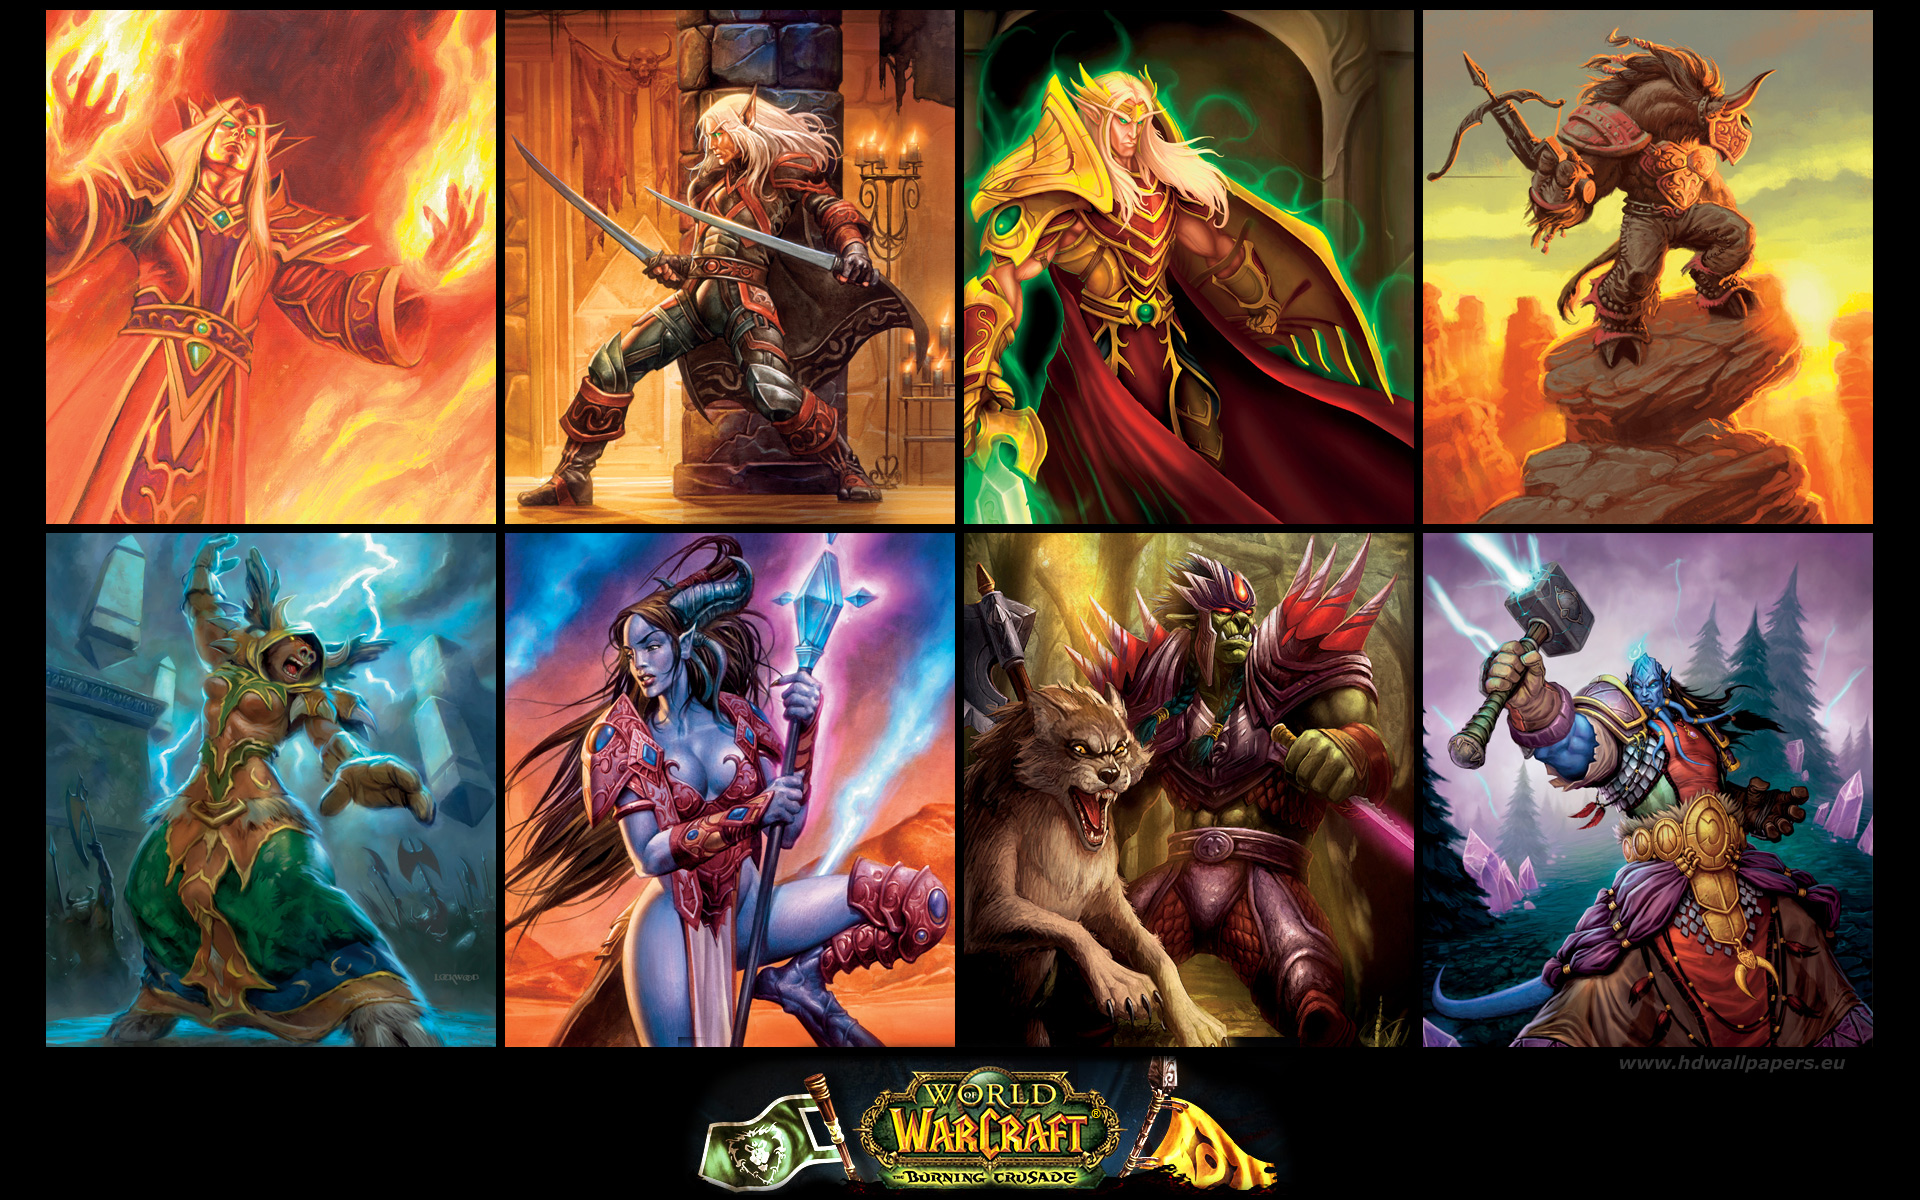 wallpapers-wow-world-of-warcraft-special-1920x1200